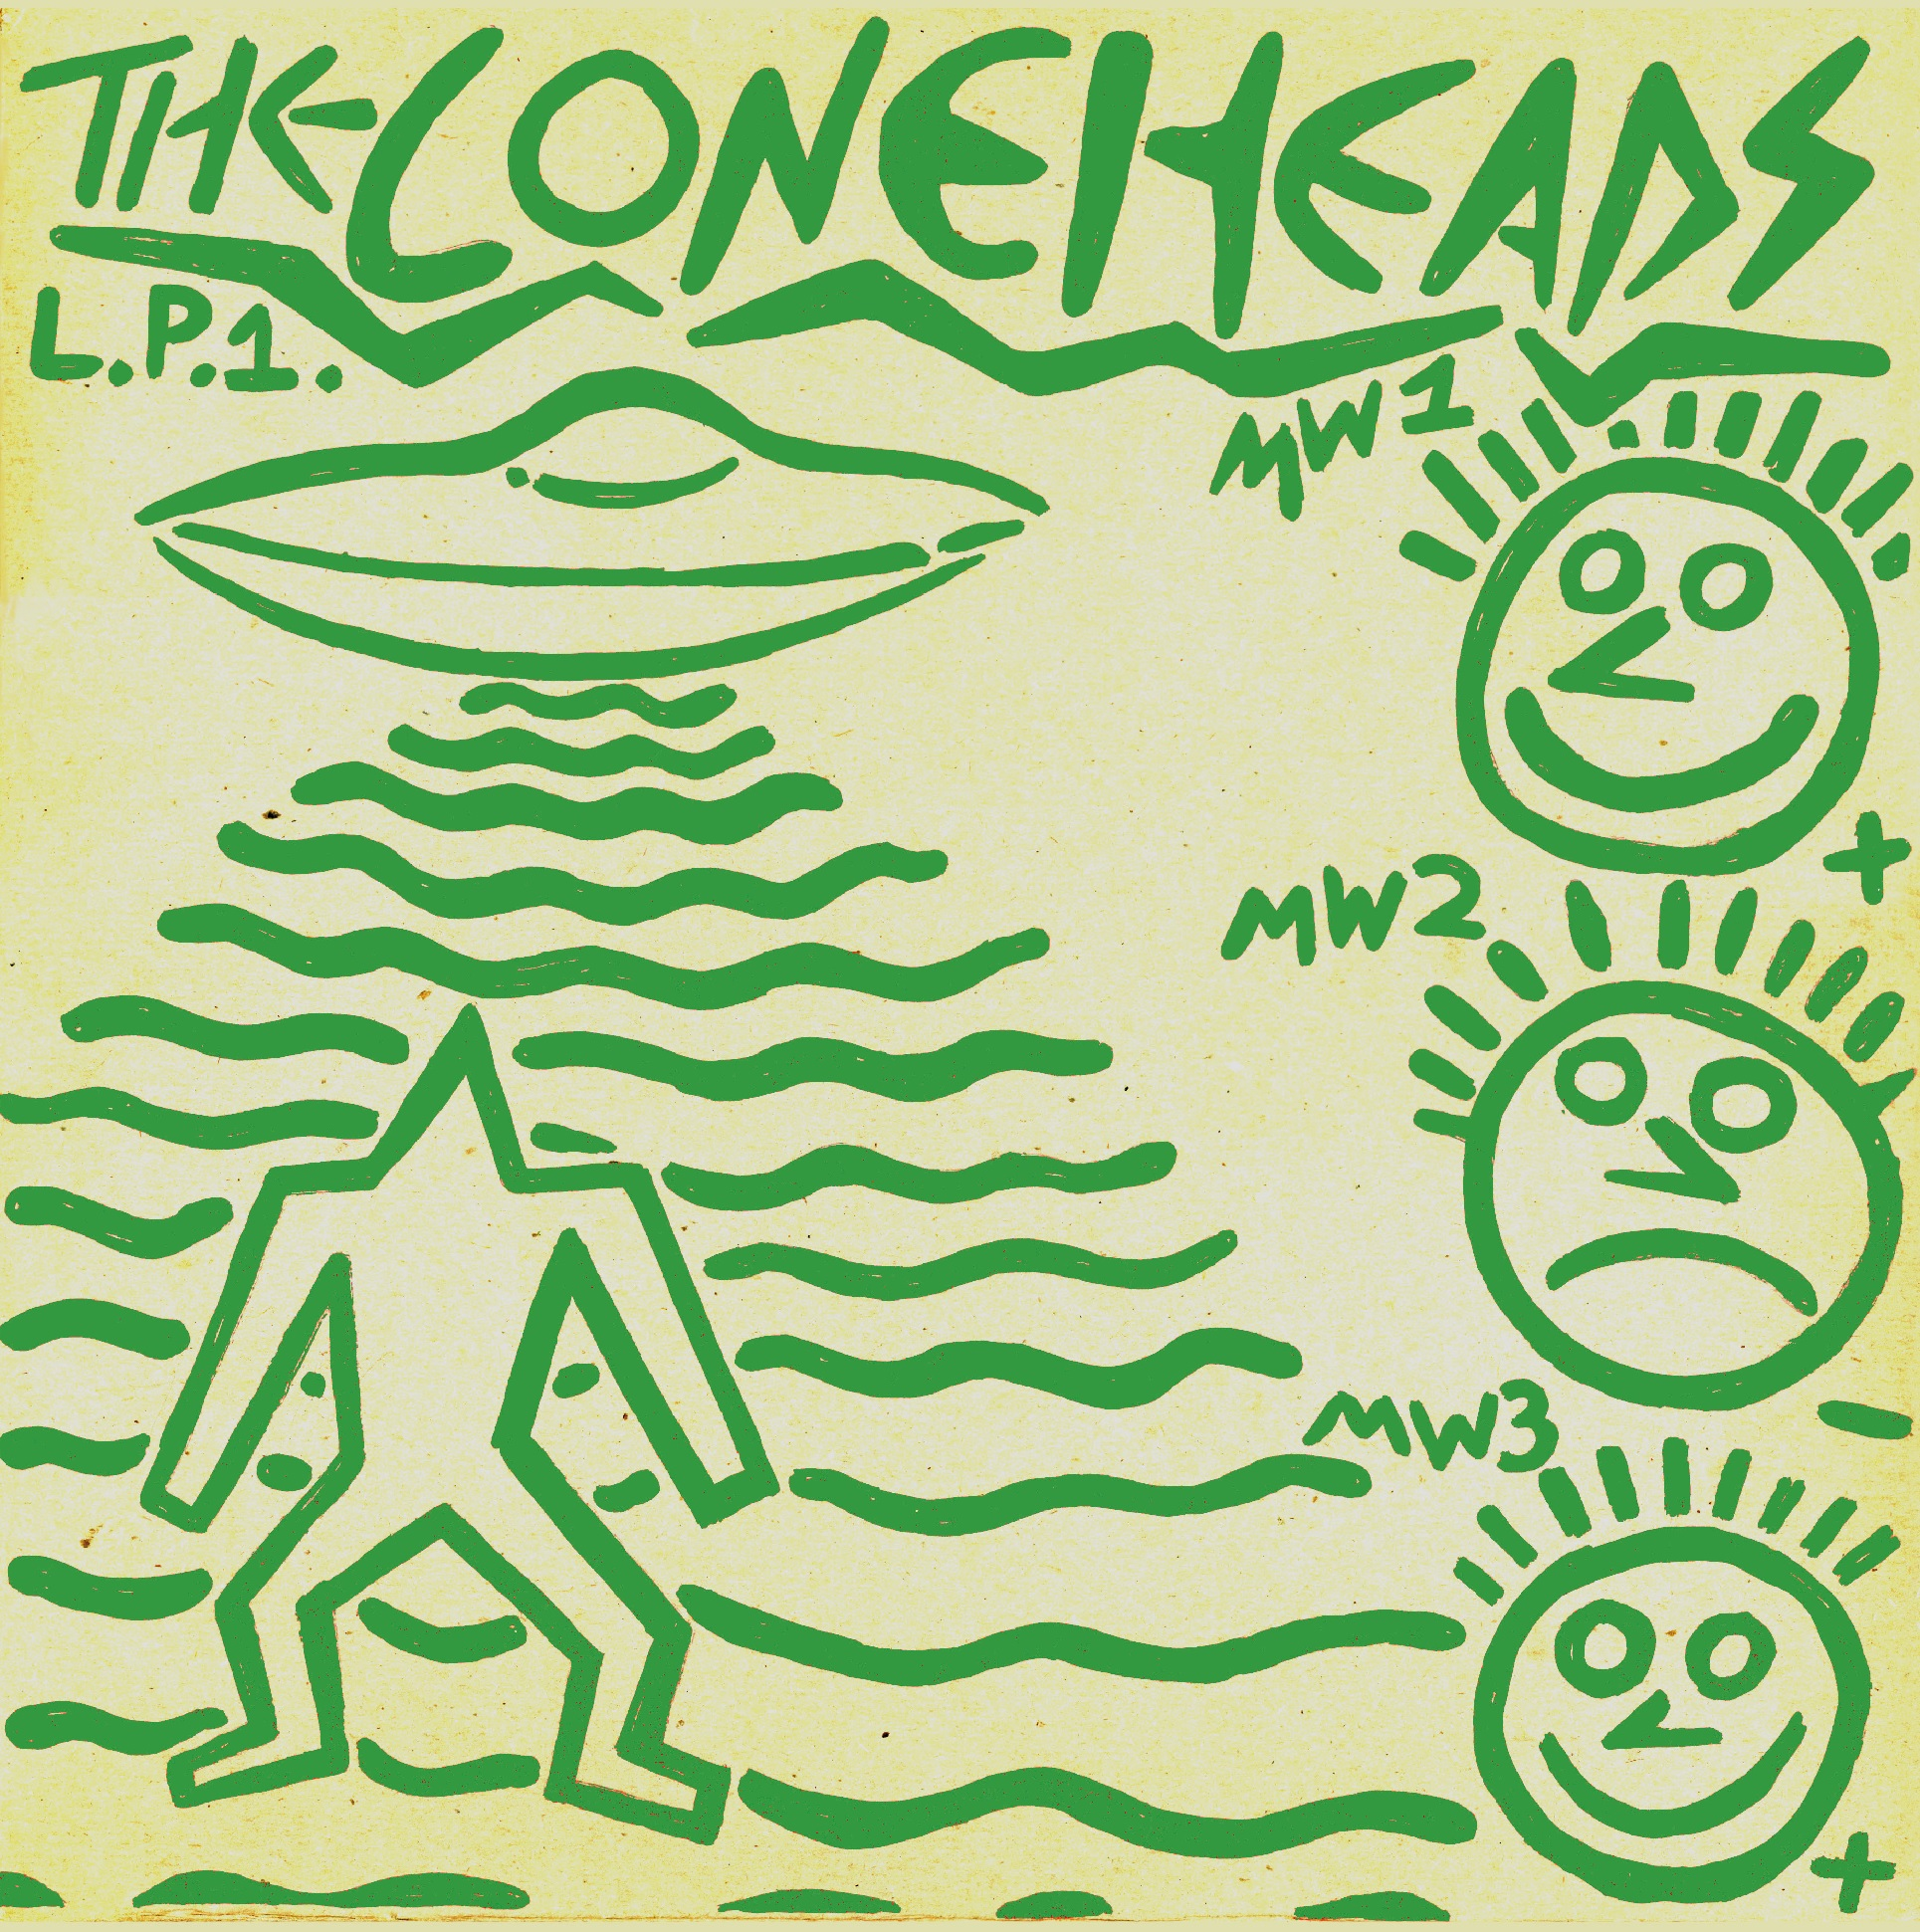 The Coneheads - L​.​P​.​1.